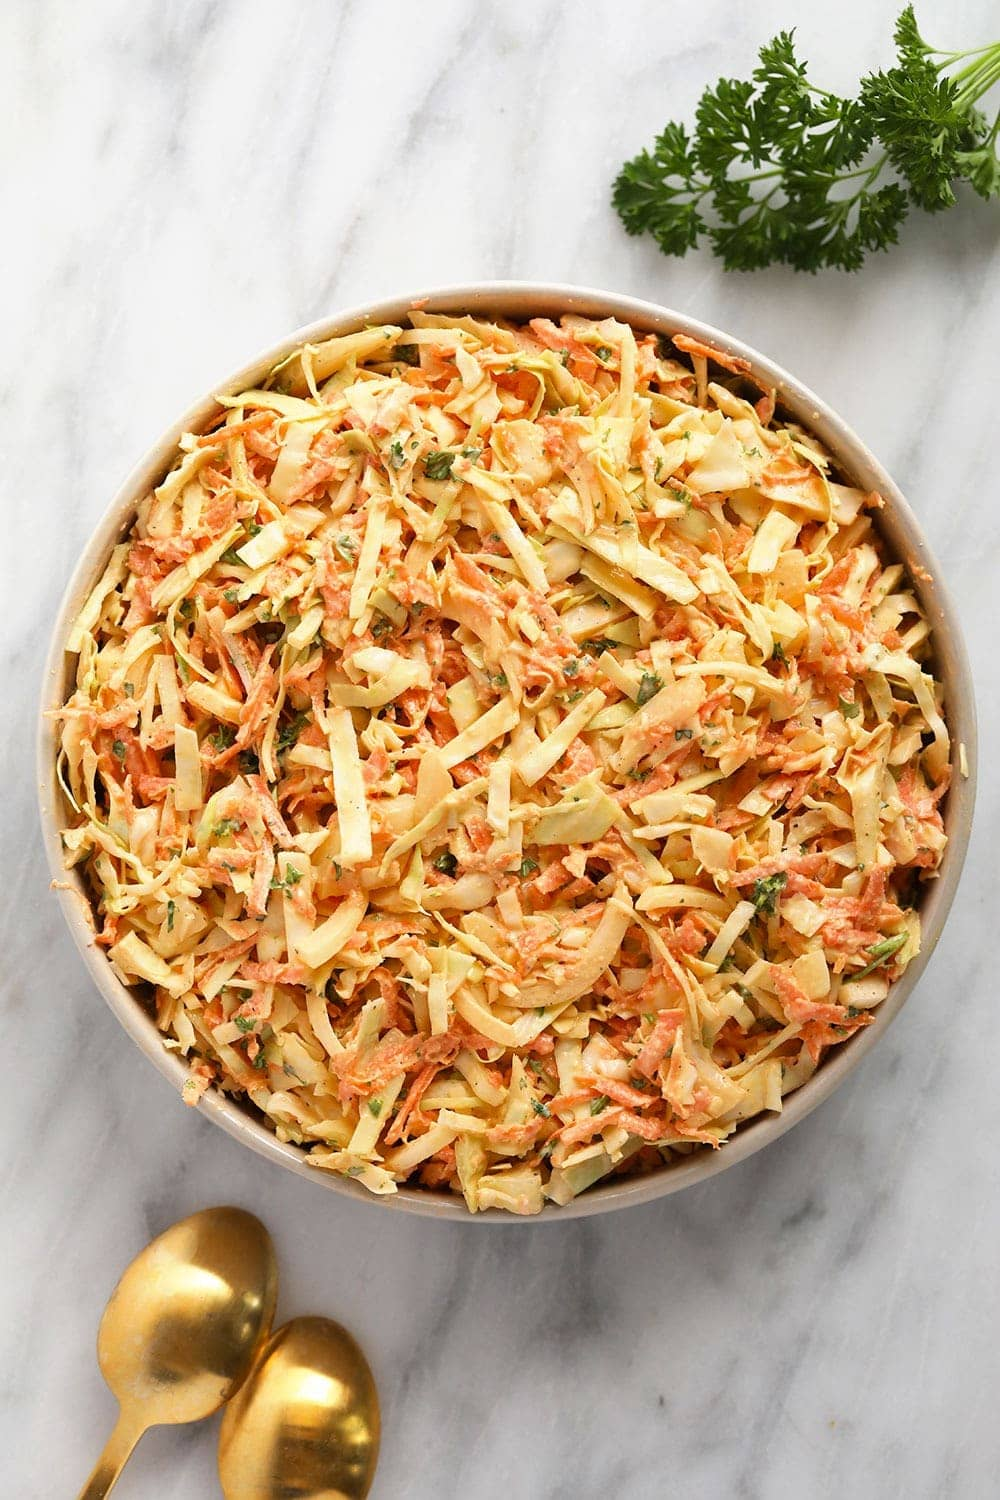 creamy coleslaw in a bowl ready to be served